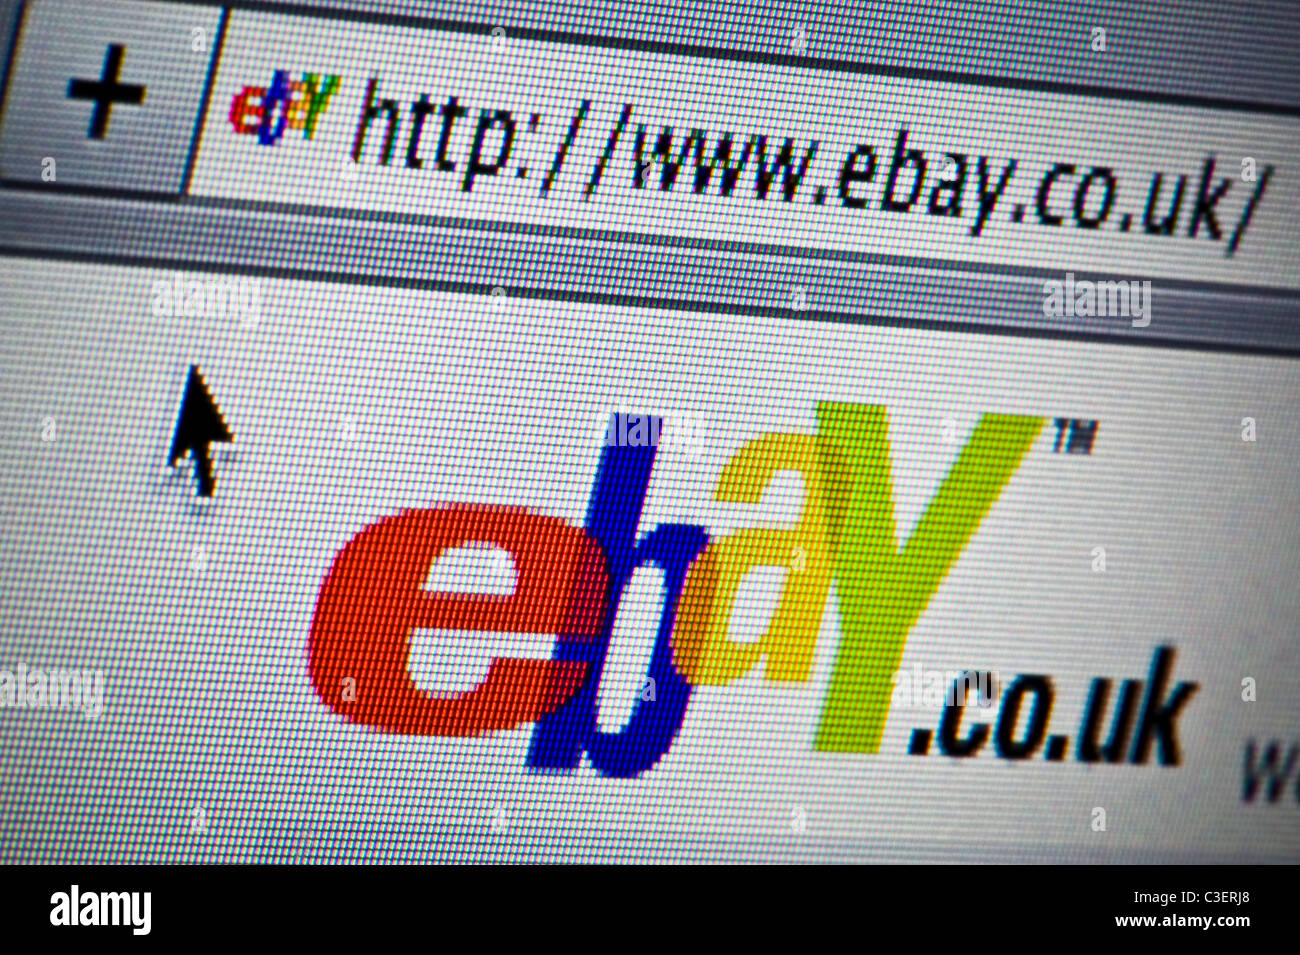 Ebay Uk High Resolution Stock Photography And Images Alamy